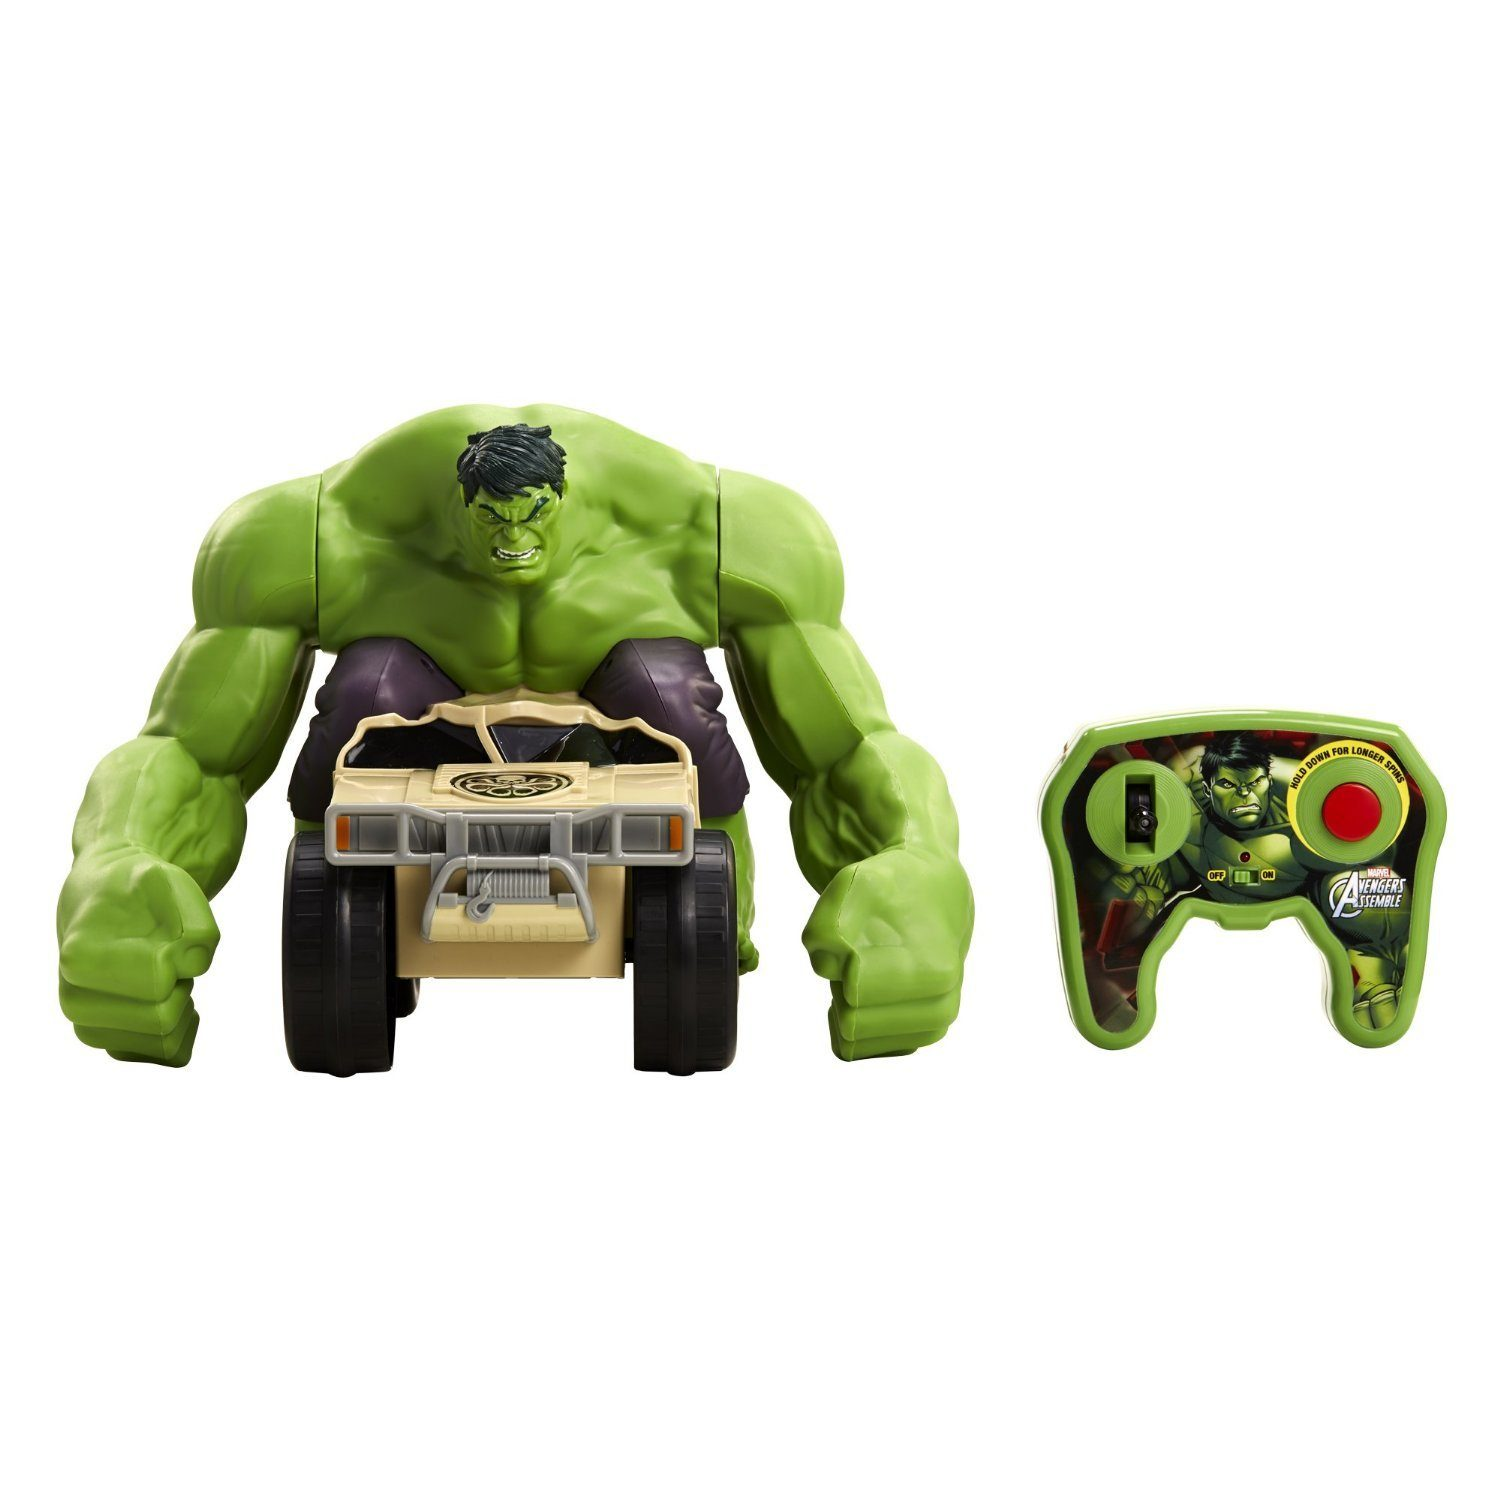 Avengers: XPV Marvel-RC Hulk Smash Toy Vehicle Only $48.99 With FREE Shipping (Reg. $69.99)!